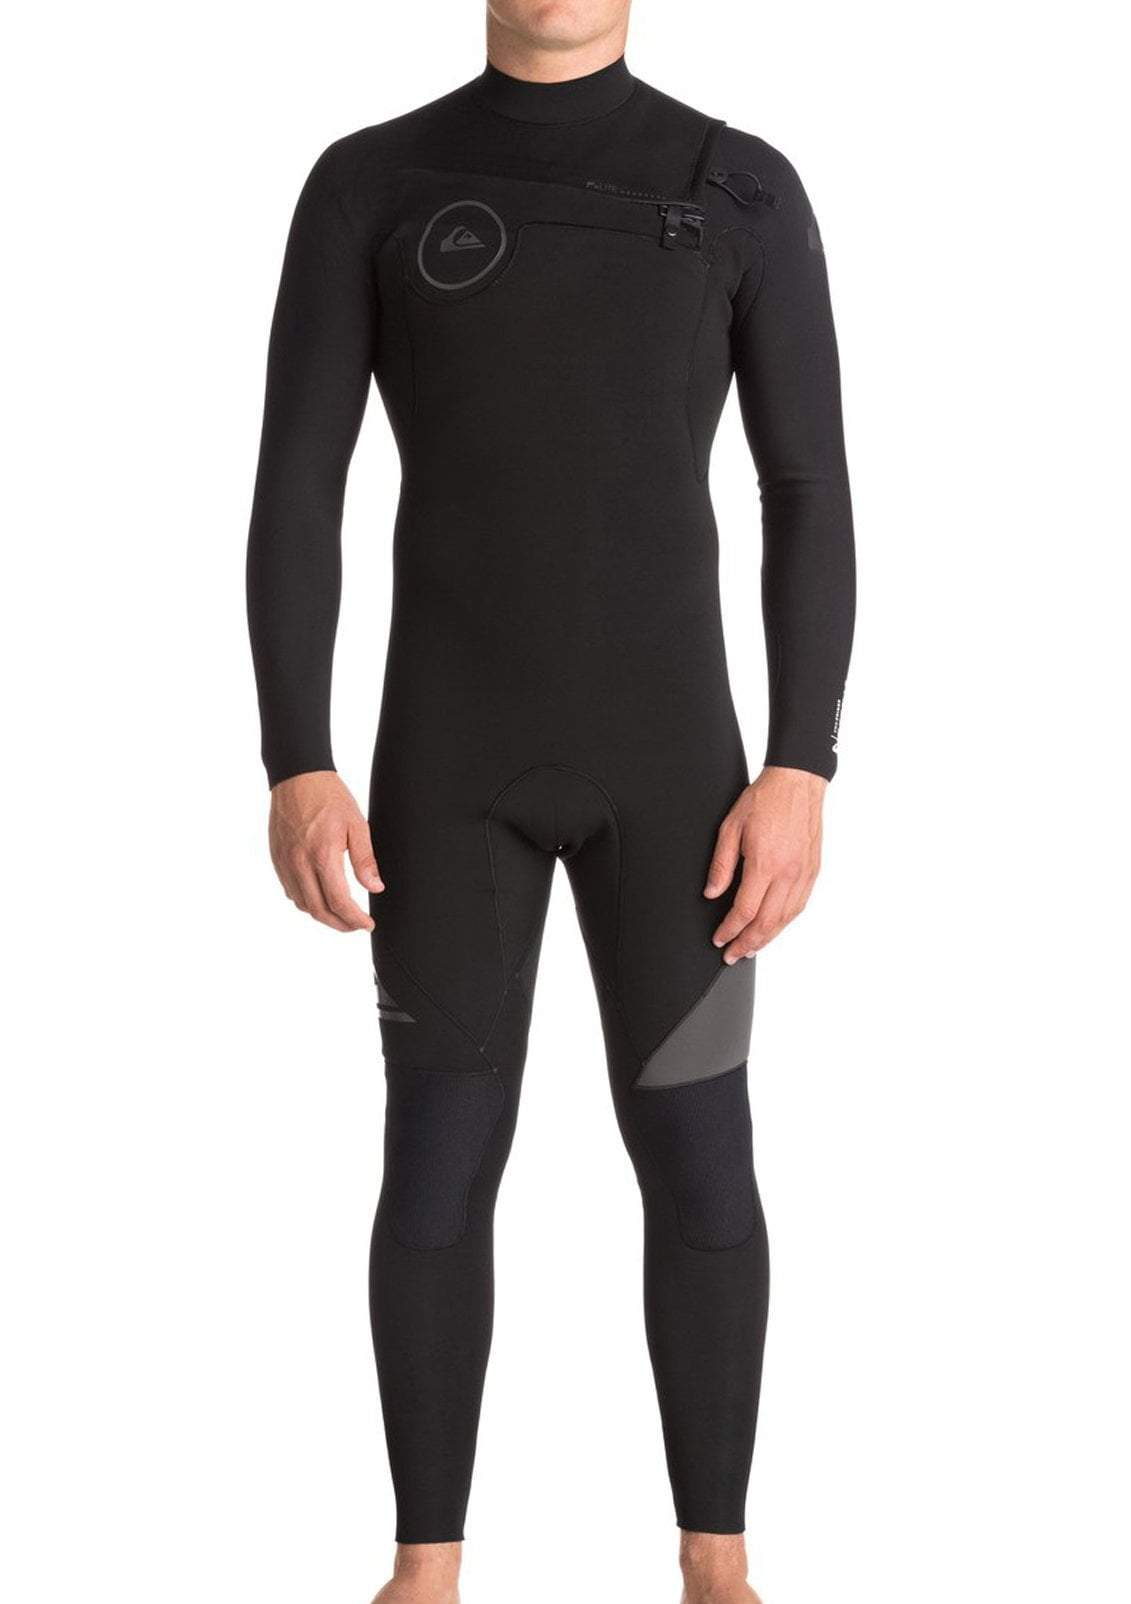 Quiksilver 4/3 Syncro C/Z GBS Wetsuit